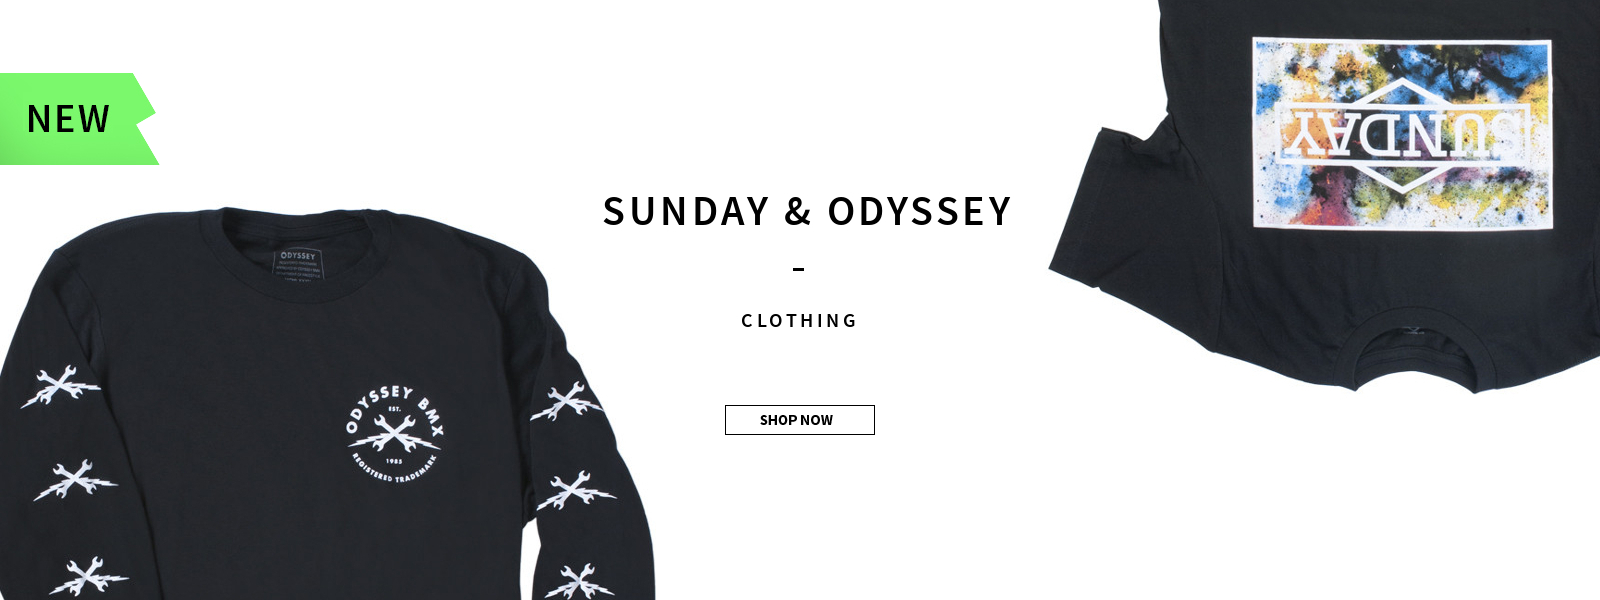 New Sunday & Odyssey Clothing - Now at www.peoplesstore.de